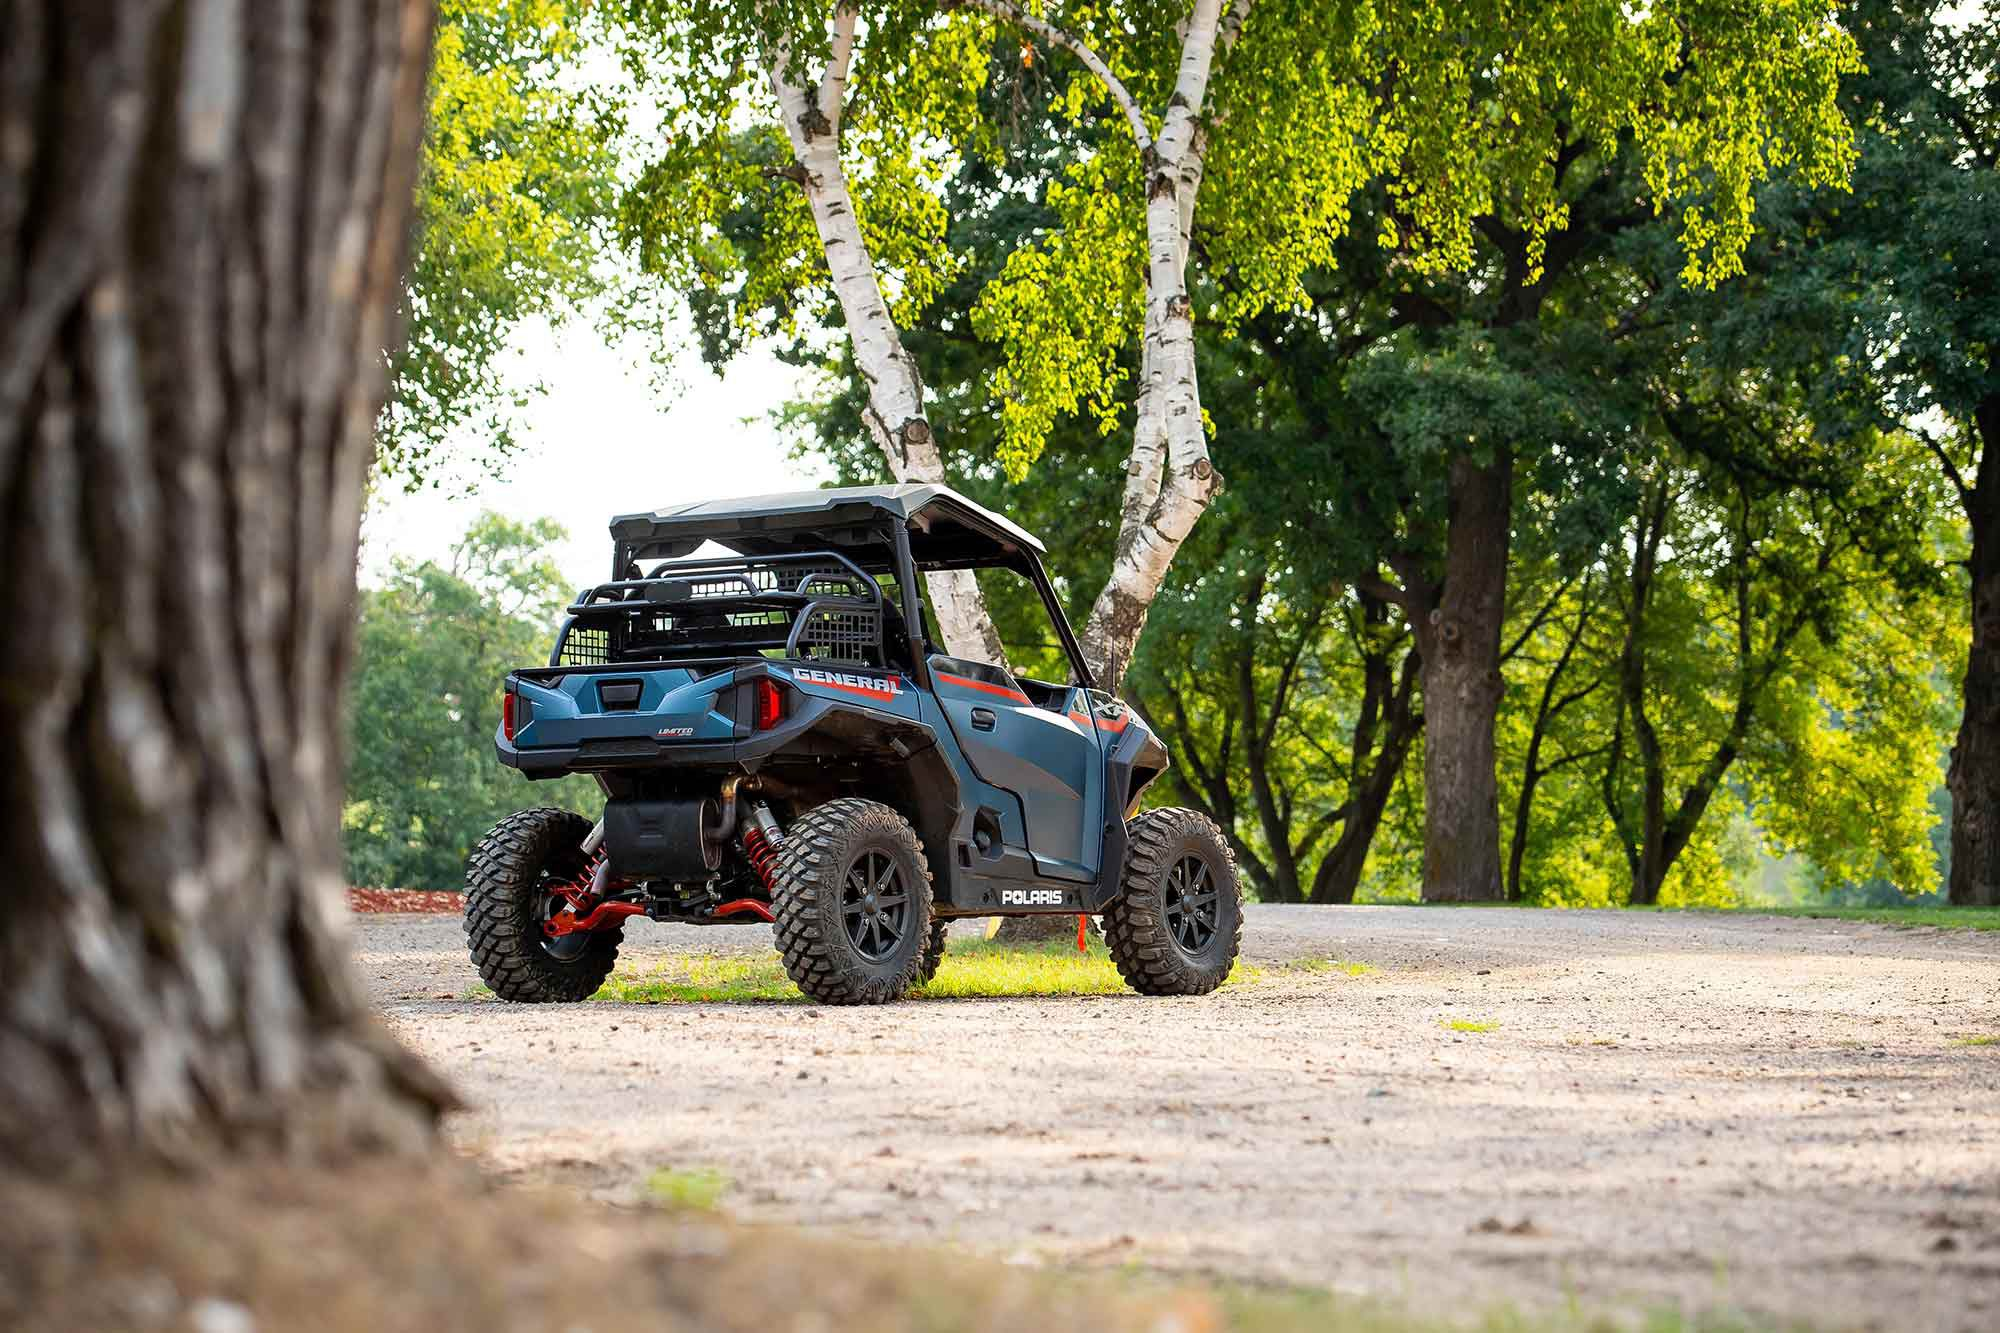 Inventory may be low, but Polaris has had one of its best years on record.